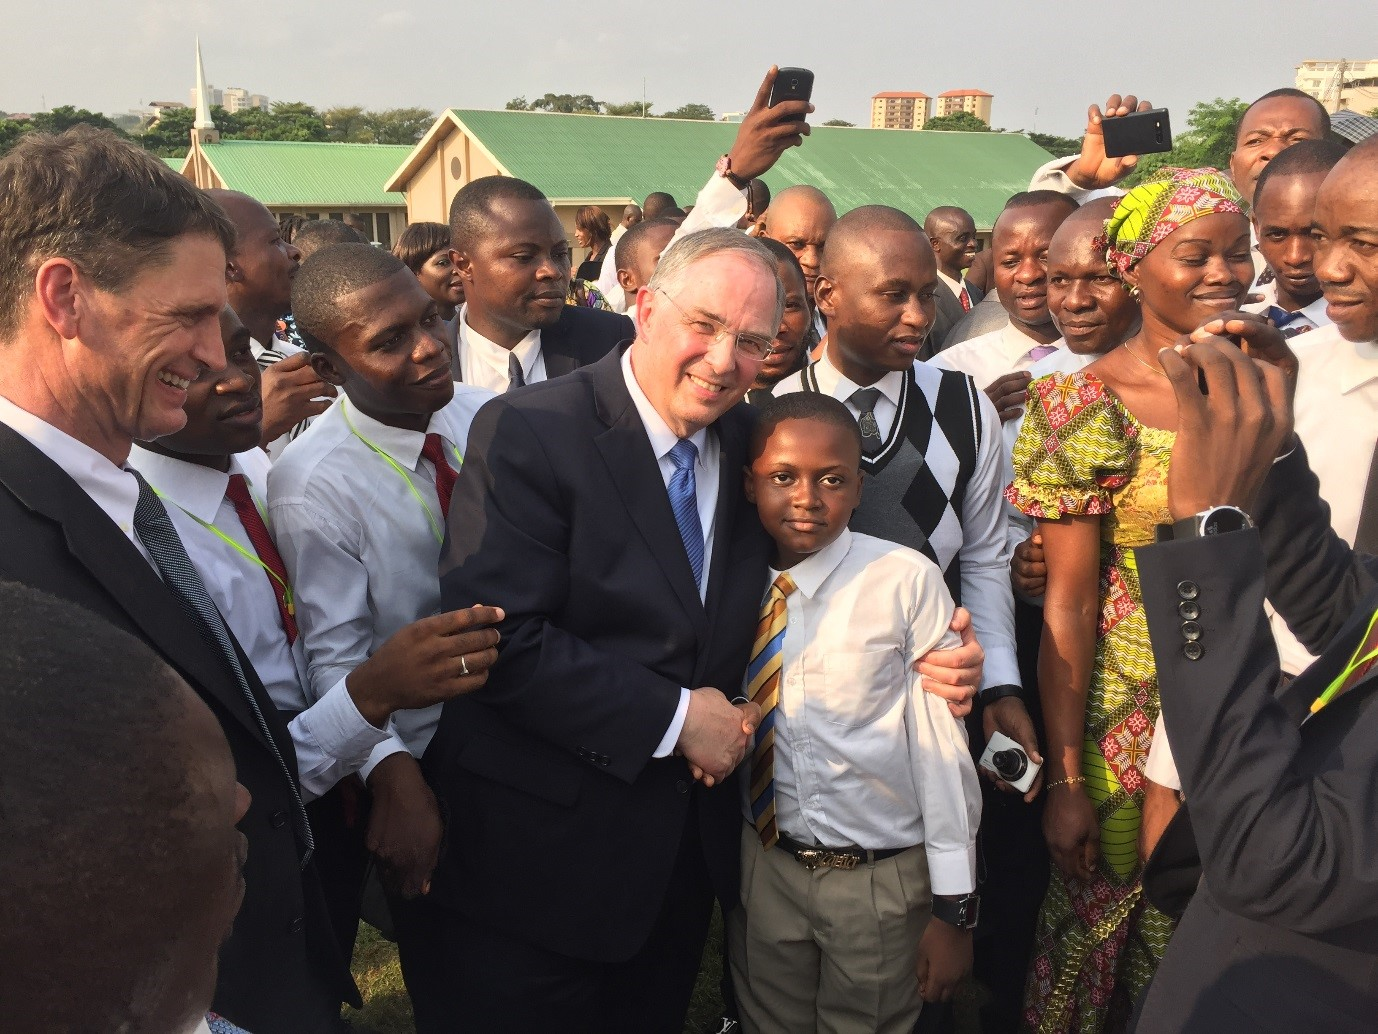 Elder Neil L. Andersen greets members attending the groundbreaking for the Kinshasa Democratic Republic of the Congo Temple on Friday, February 12, 2016.